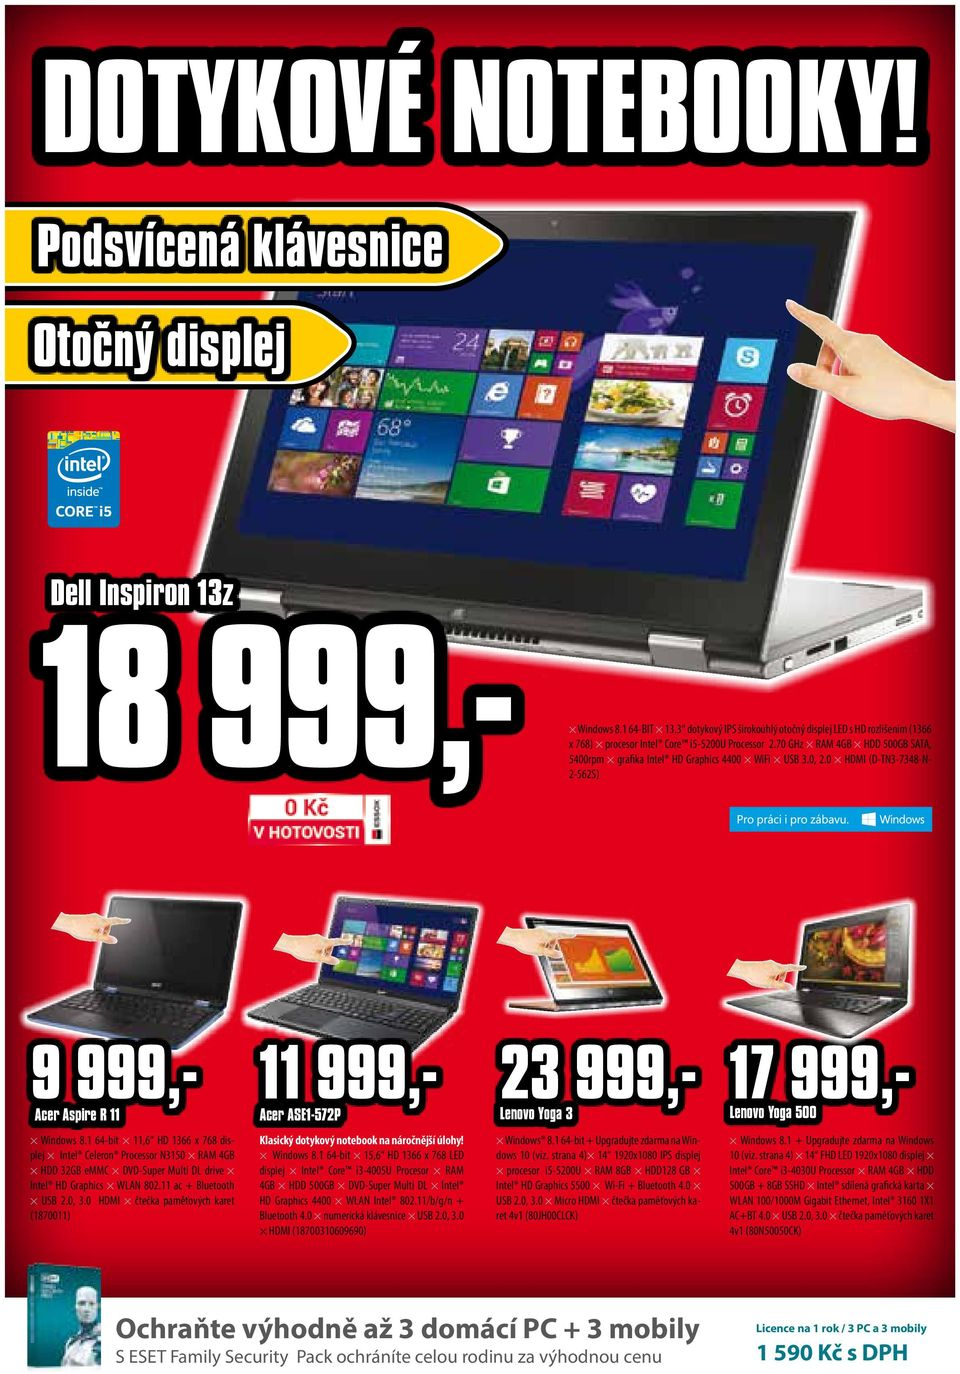 0, 2.0 HDMI (D-TN3-7348-N- 2-562S) 9 999,- Acer Aspire R 11 11 999,- Acer ASE1-572P 23 999,- Lenovo Yoga 3 17 999,- Lenovo Yoga 500 Windows 8.